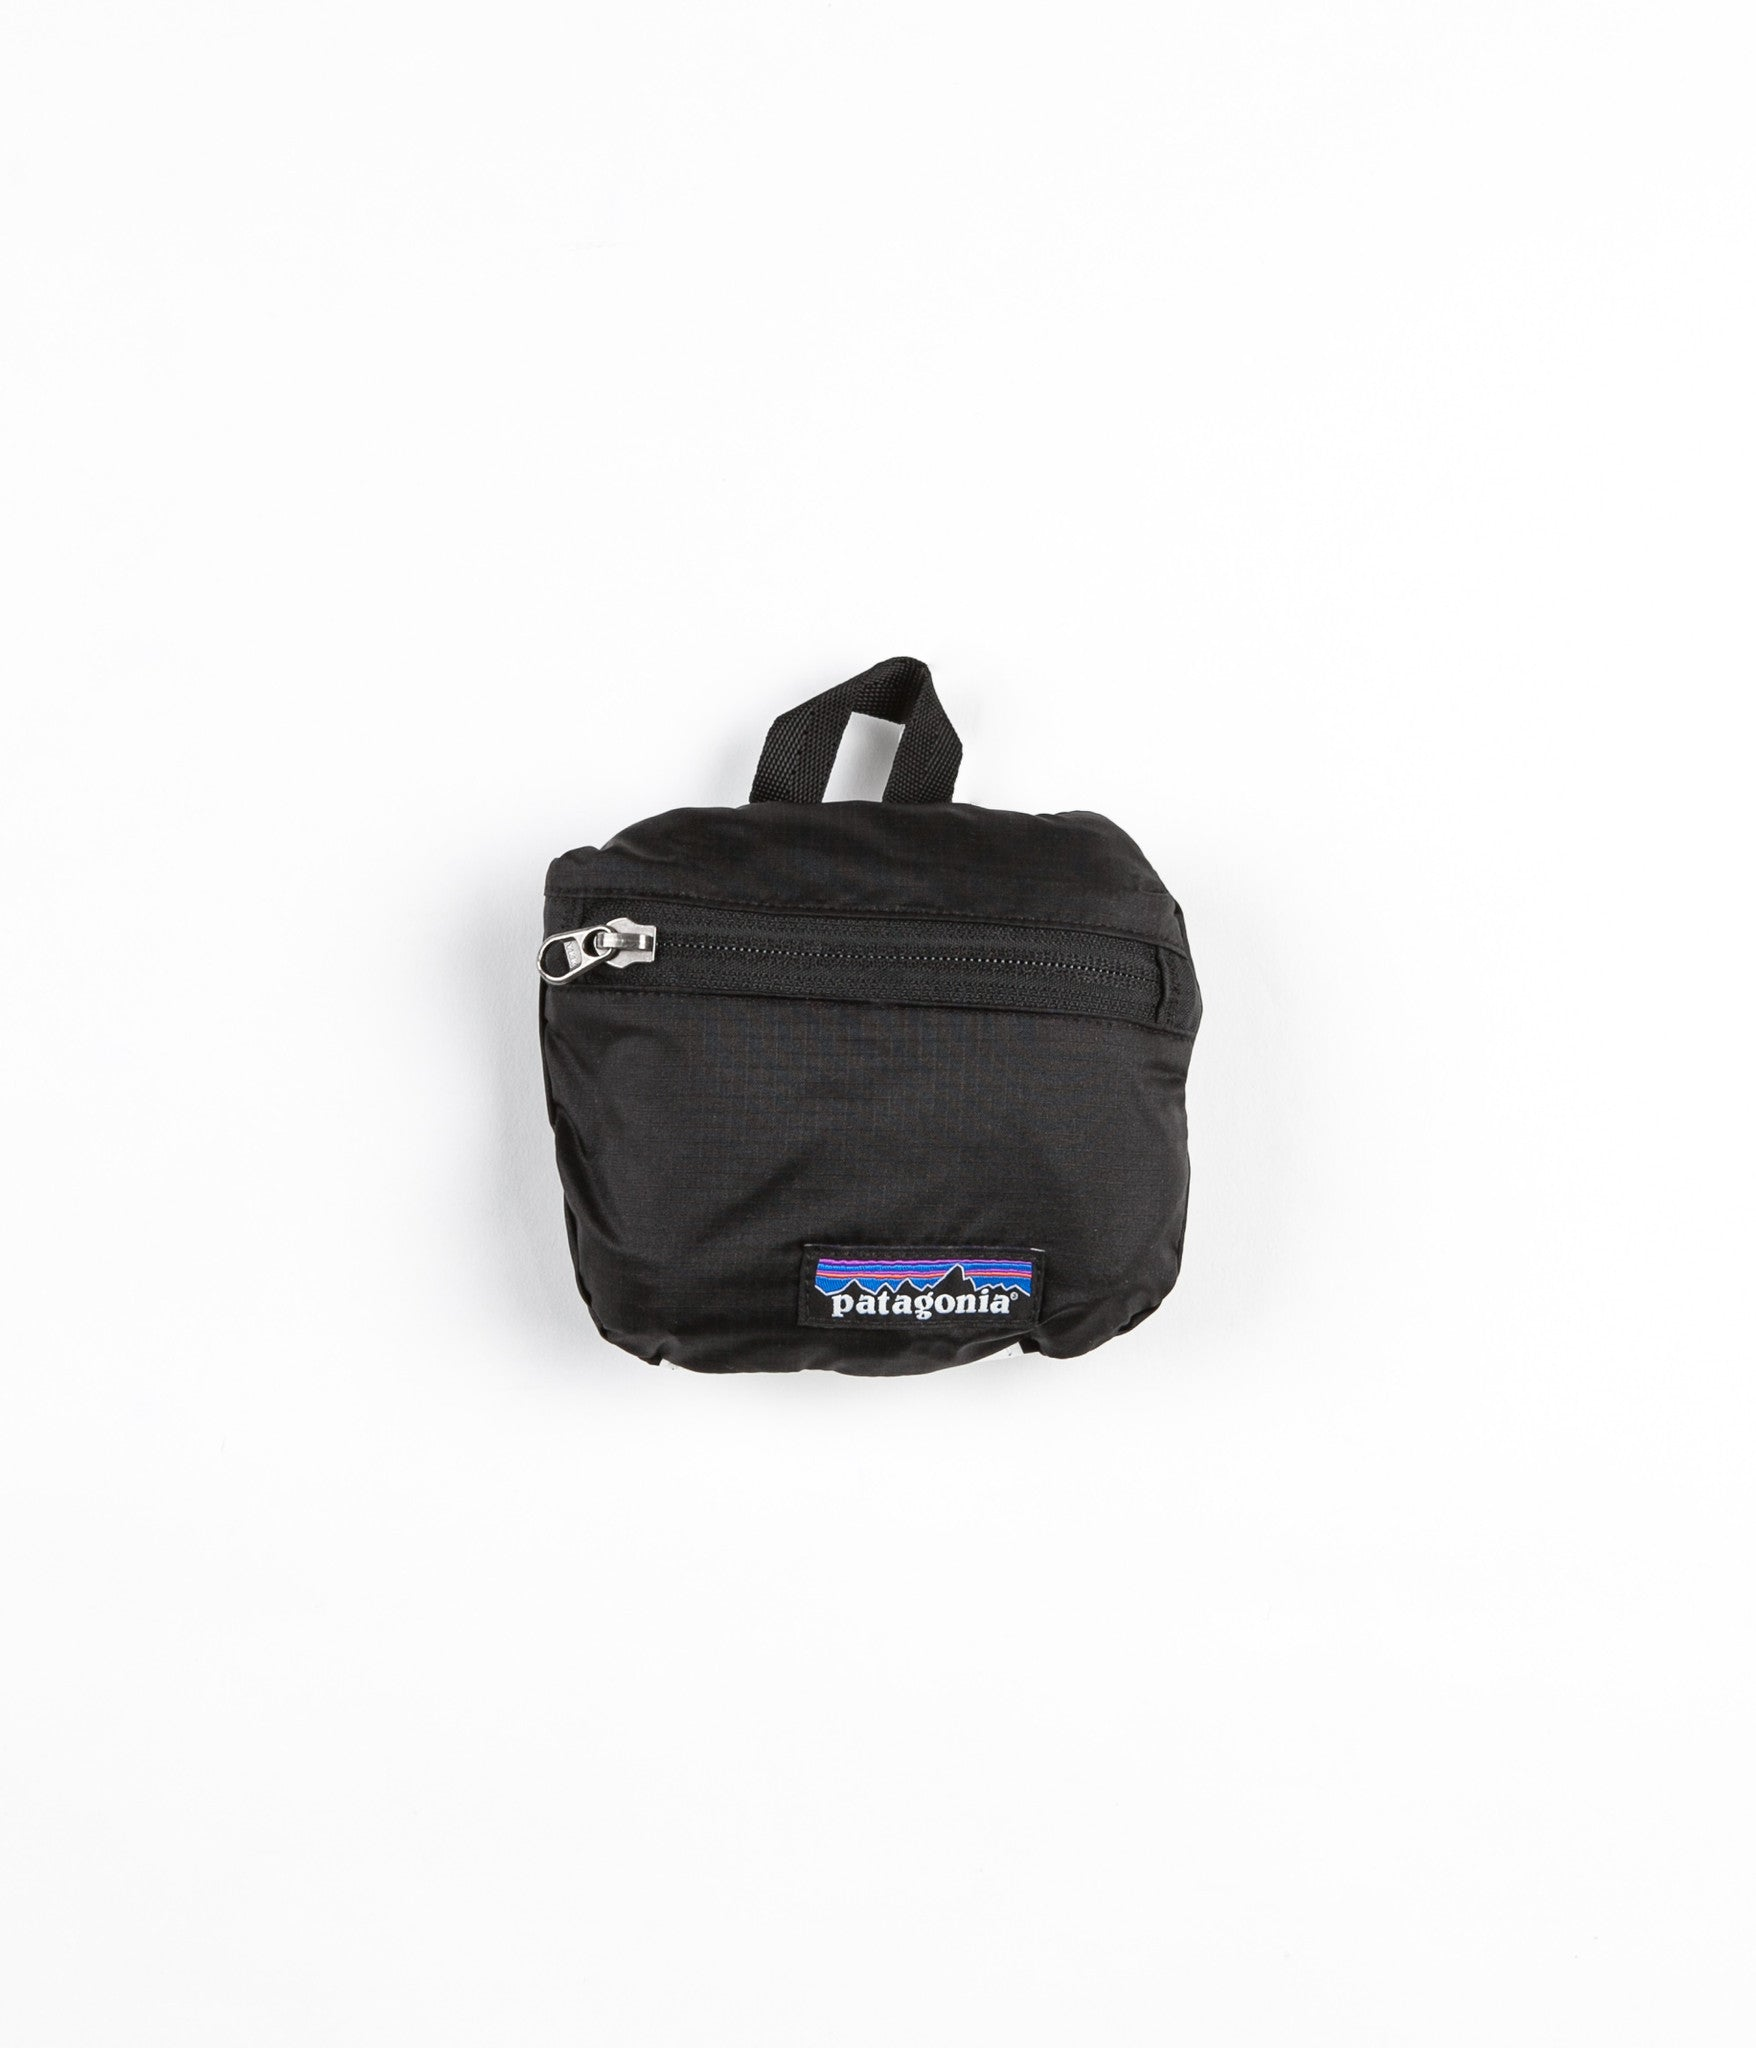 Patagonia Lightweight Travel Mini Hip Bag - Black